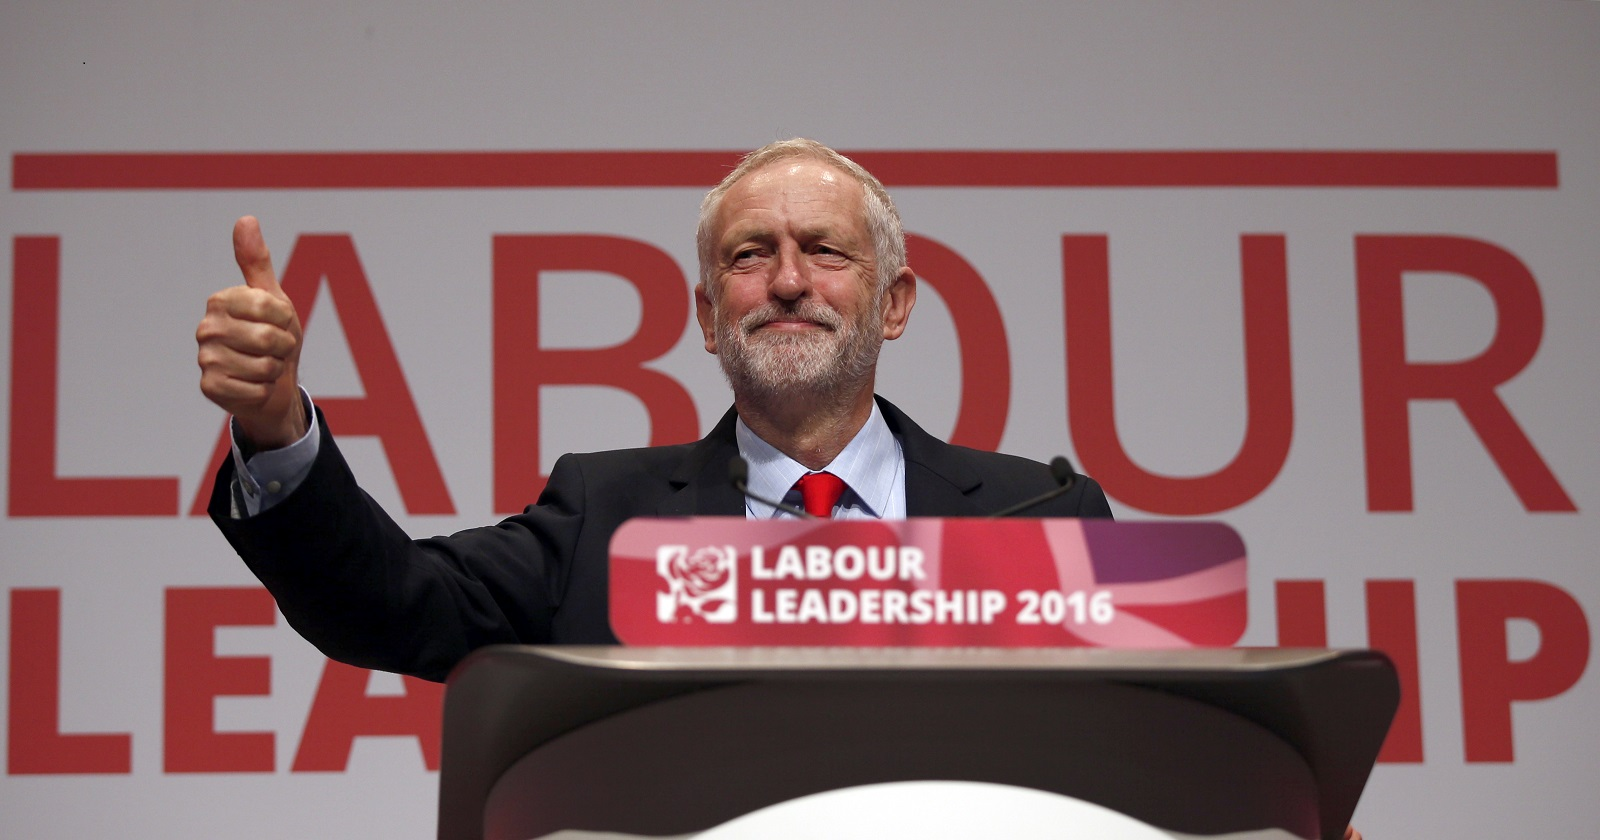 Jeremy Corbyn Labour leadership election results 2016